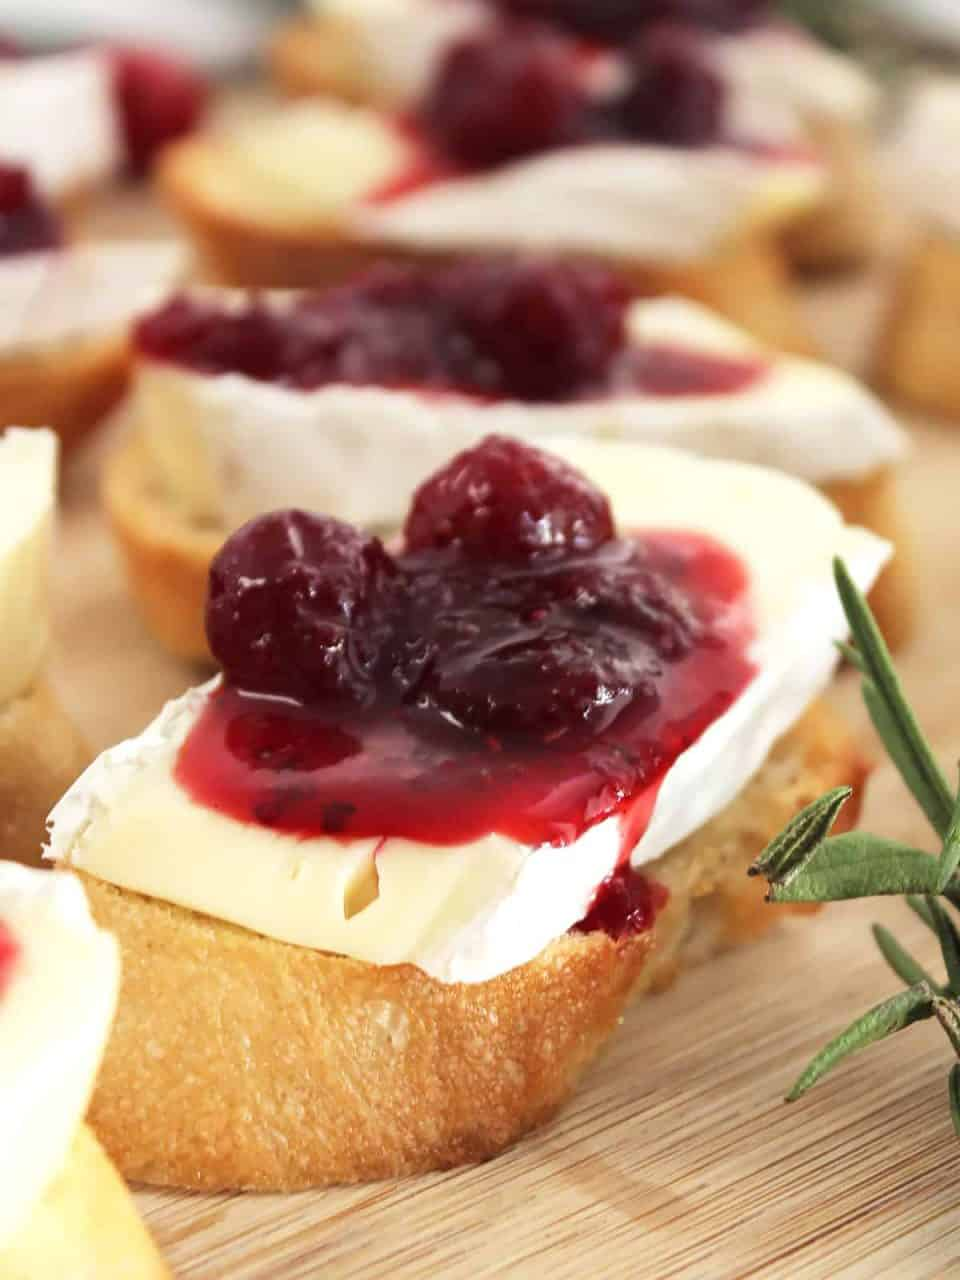 A crostini topped with brie and cranberry sauce.